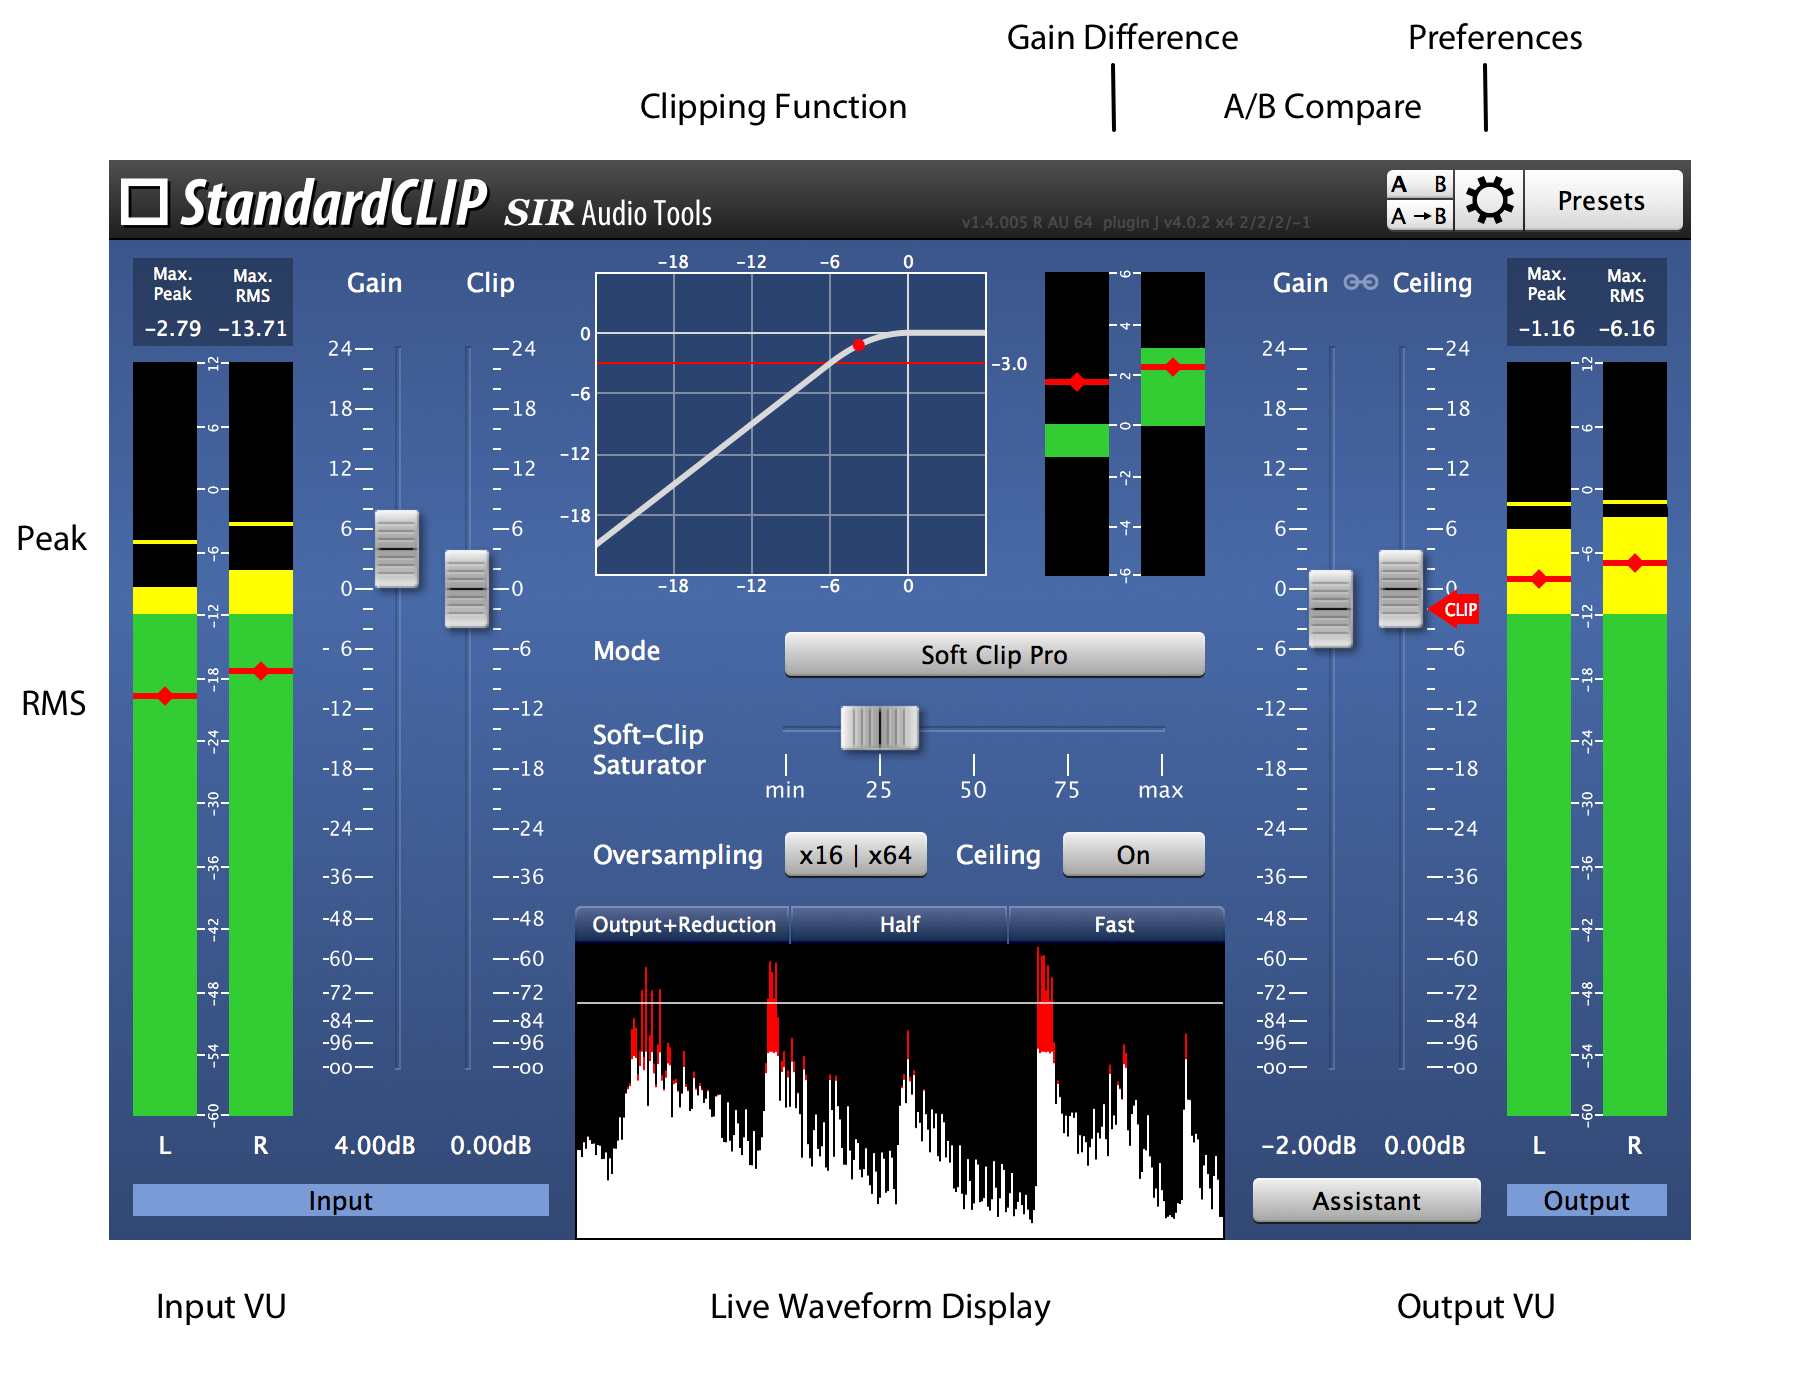 StandardCLIP | Manual | SIR Audio Tools